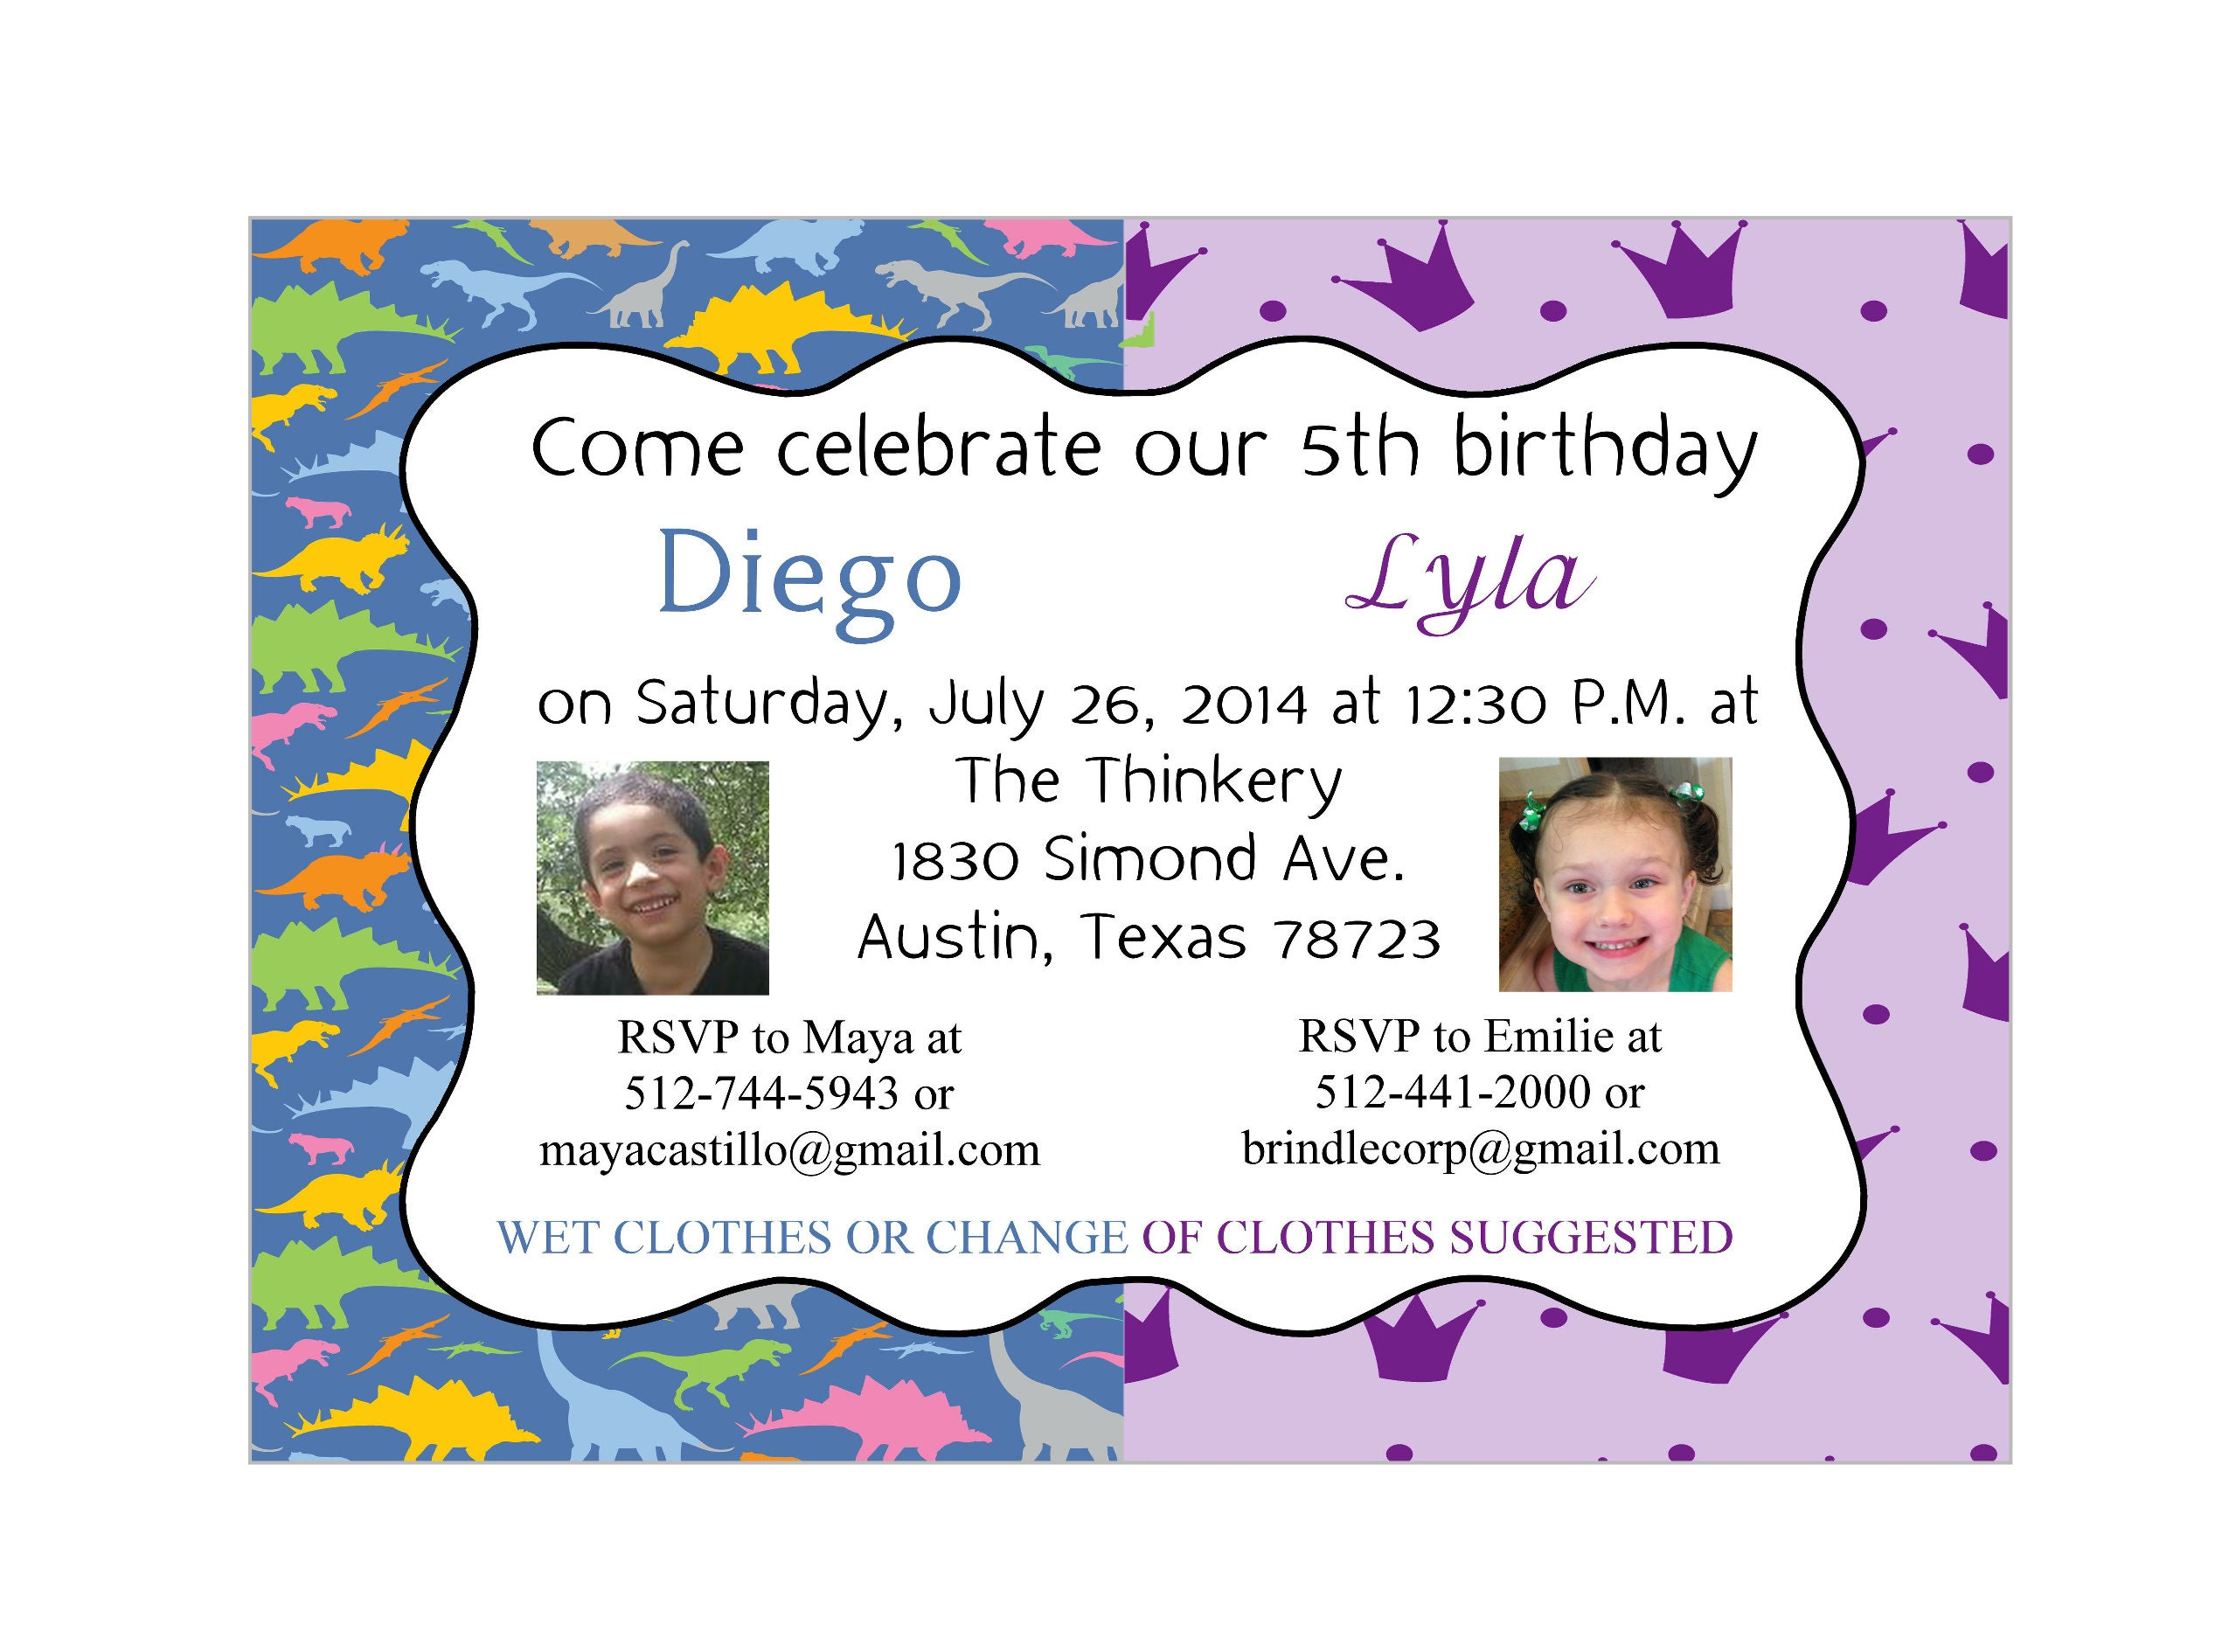 Dinosaur and Princess Birthday Invitation - Printed/Digital